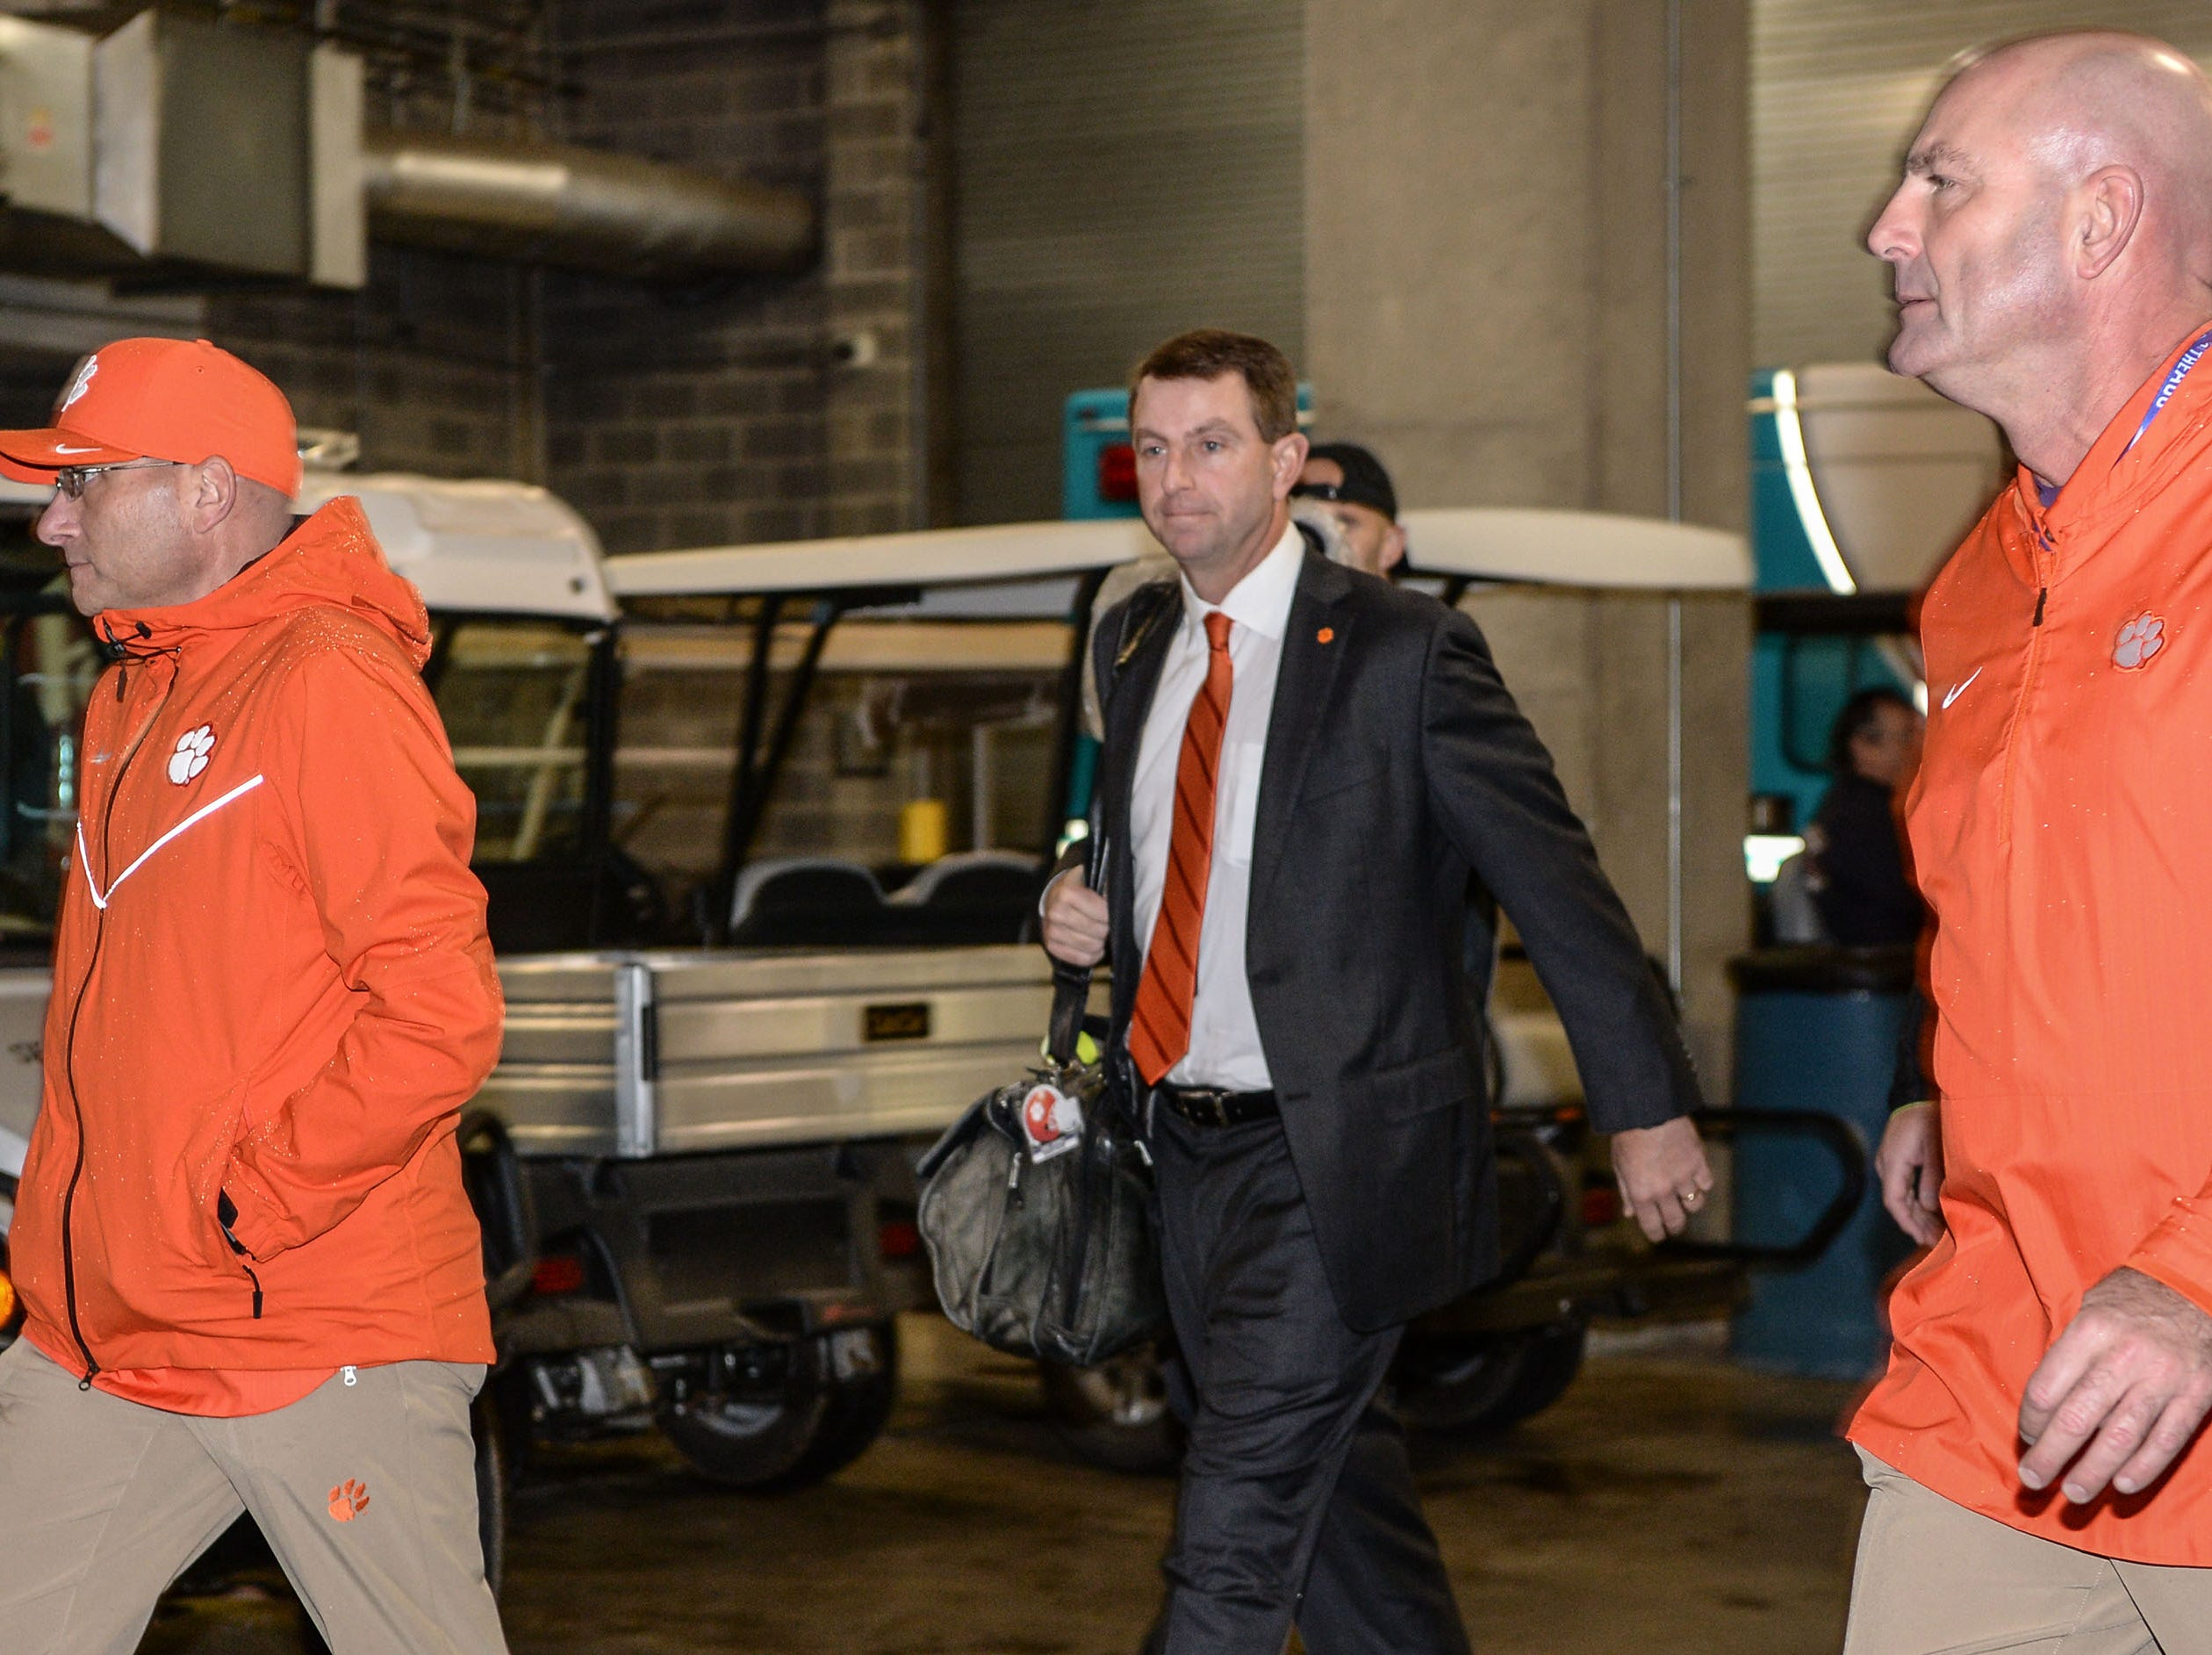 Clemson Head Coach Dabo Swinney arrives before the game with Pittsburgh at the Dr. Pepper ACC football championship at Bank of America Stadium in Charlotte, N.C. on Saturday, December 1, 2018.